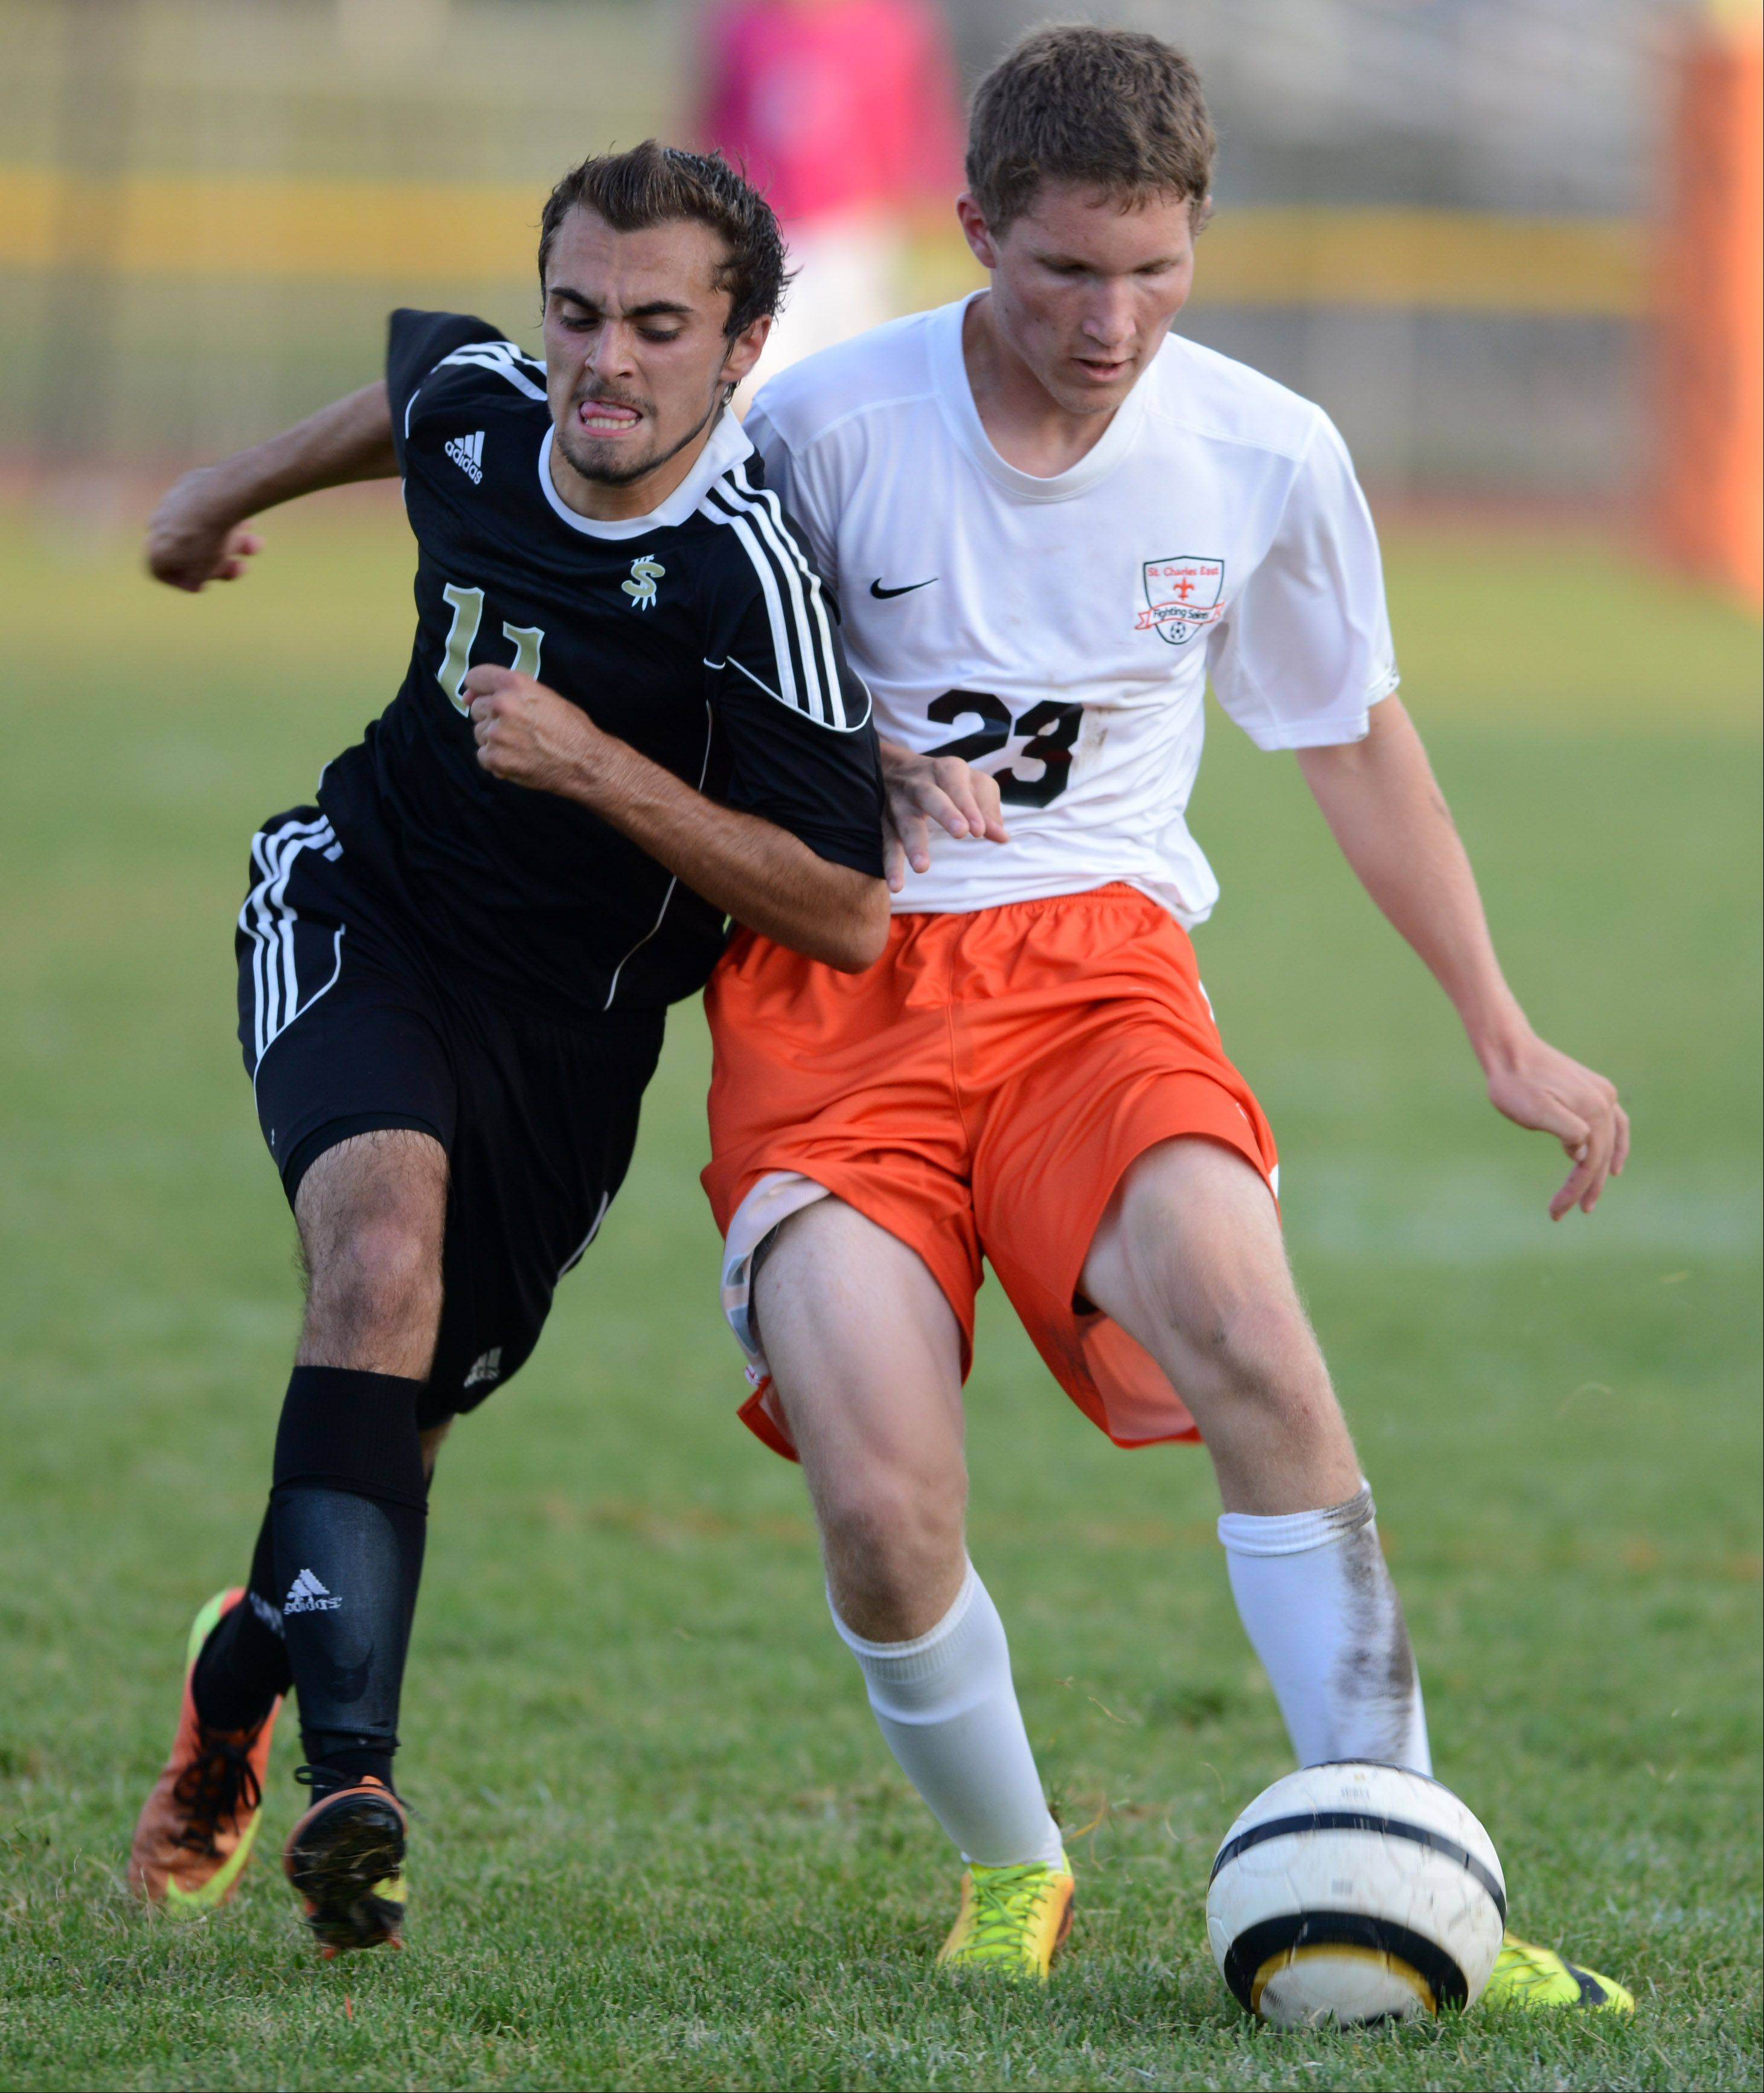 Streamwood's Brandon Malpartida battles St. Charles East's Tyler Robbins for the ball during Thursday's game in St. Charles.